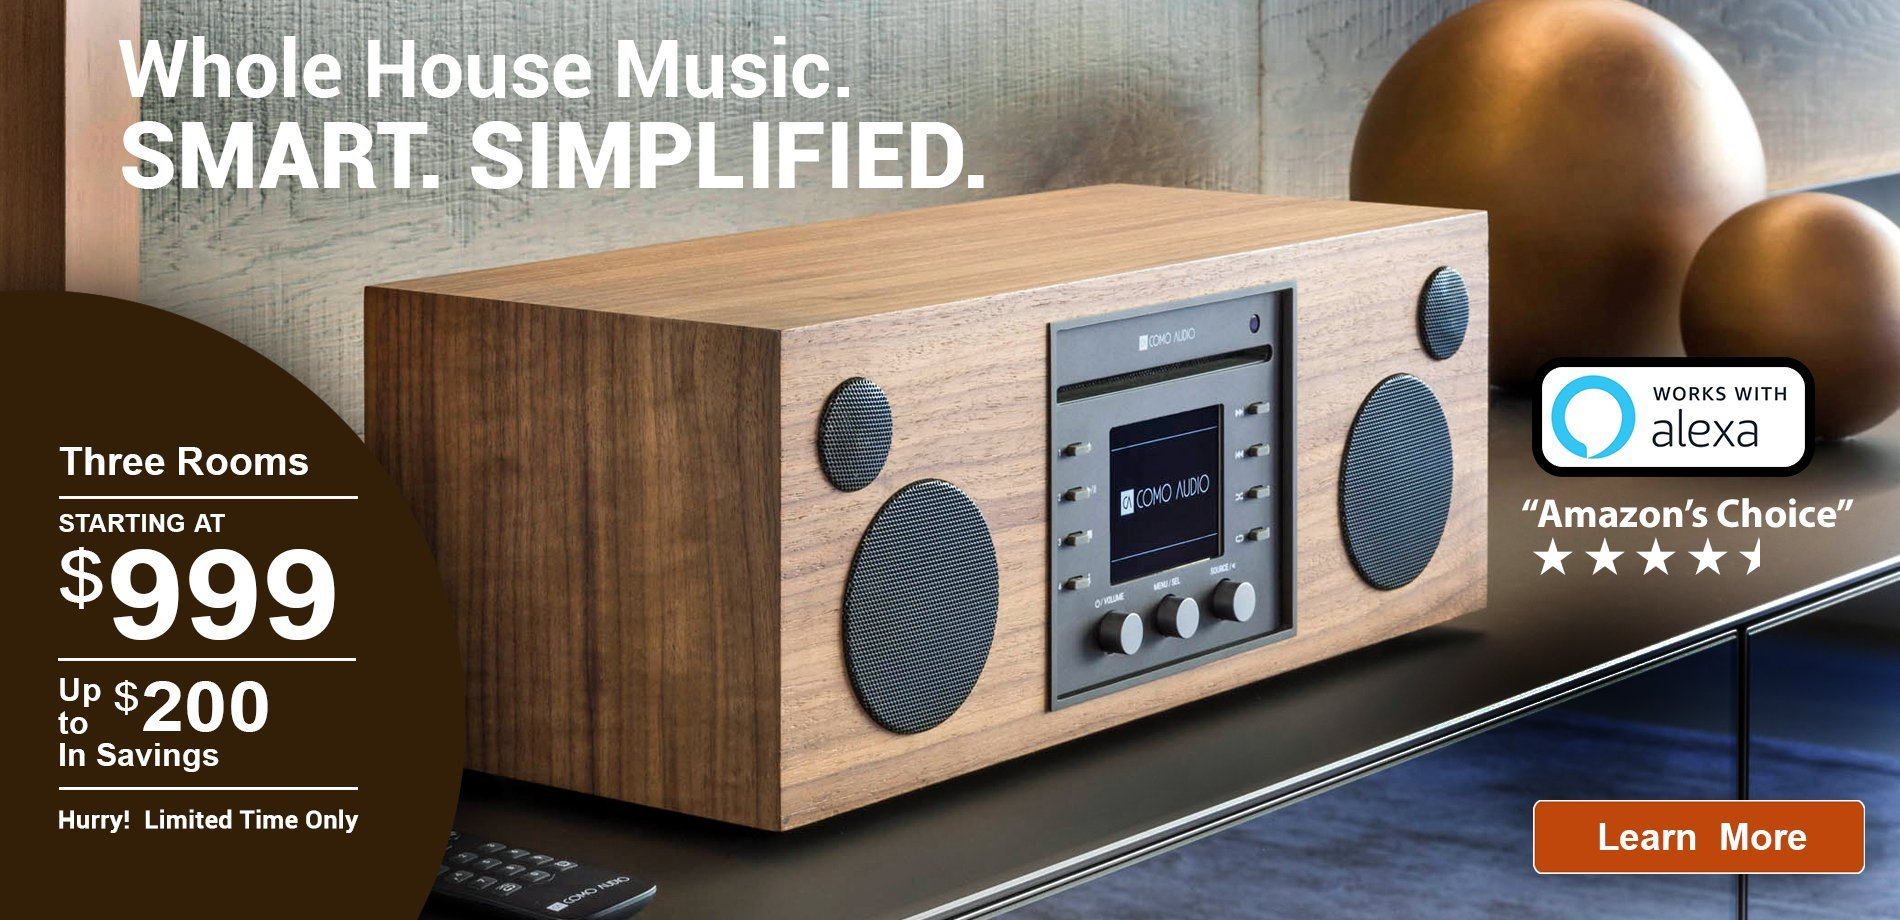 Whole House Music. Smart. Simplified.